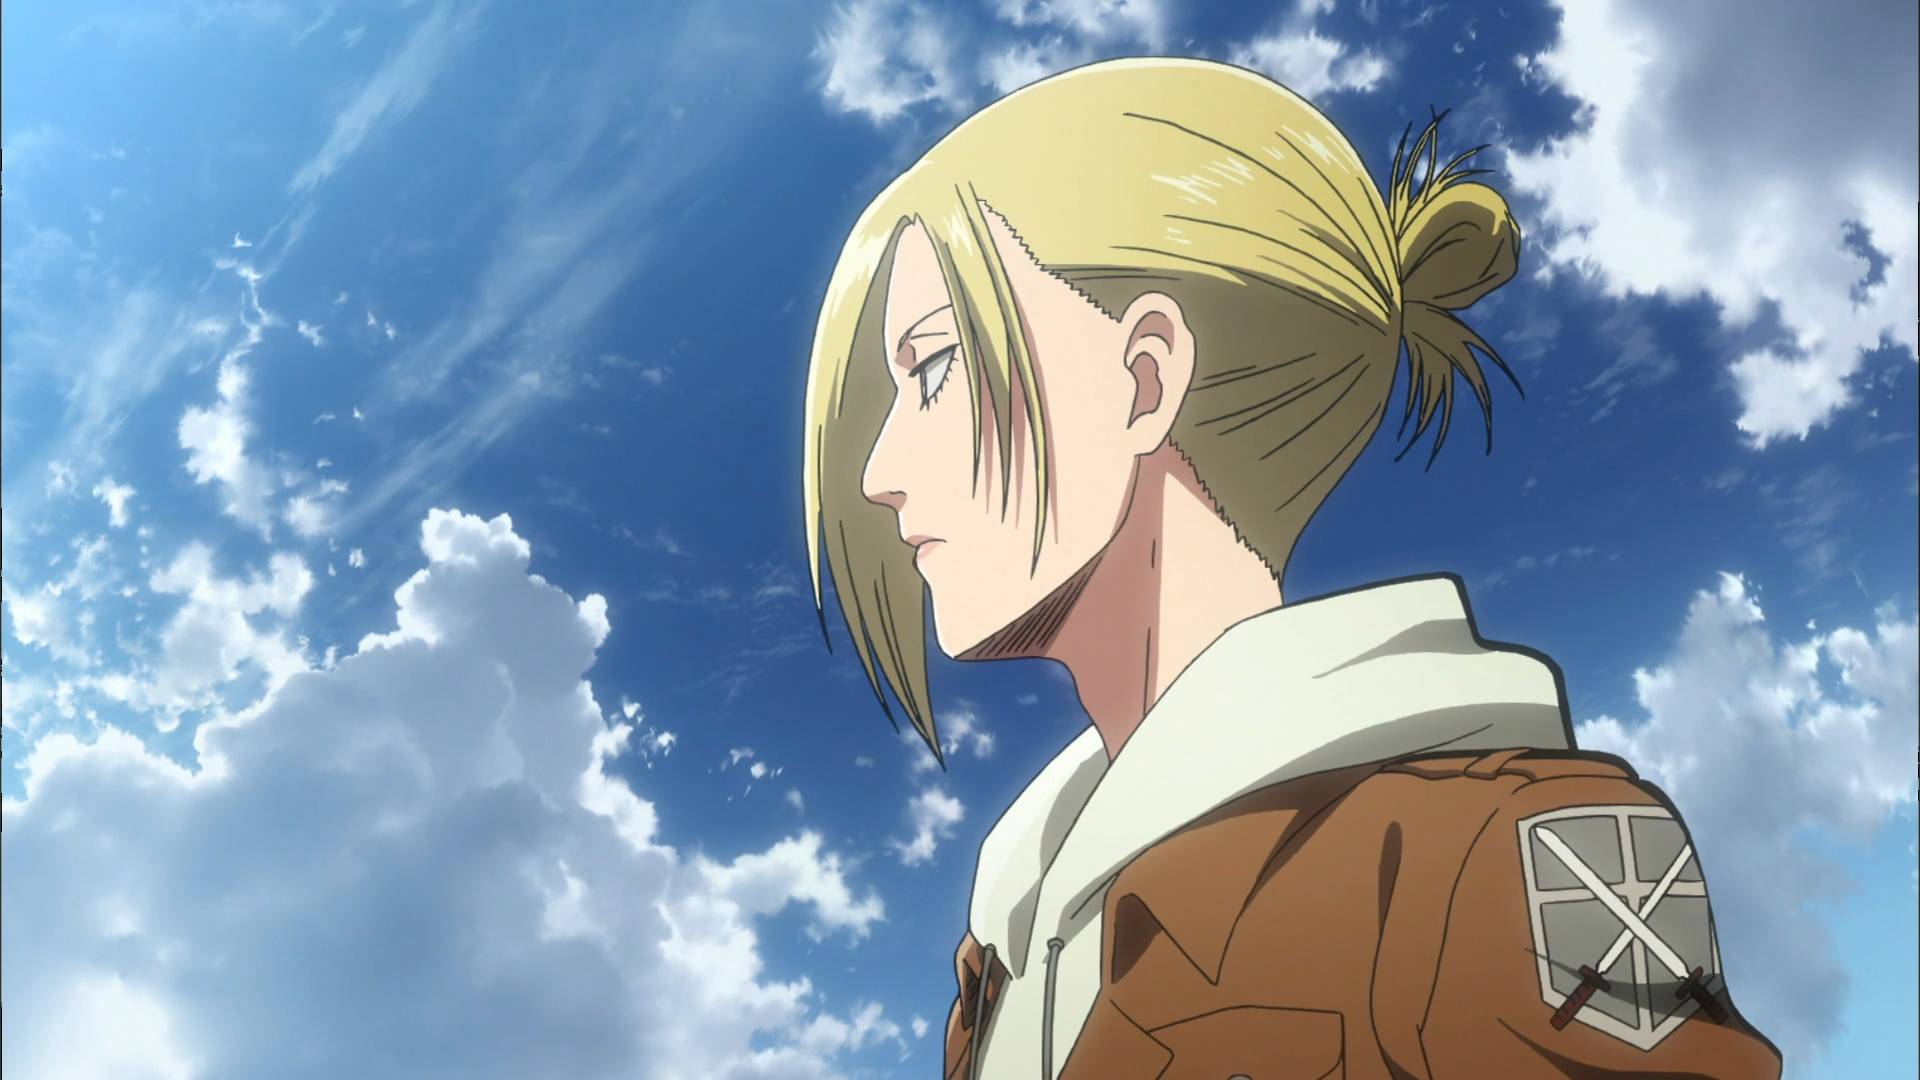 annie leonhart 2   Attack on Titan Wallpaper 1920x1080